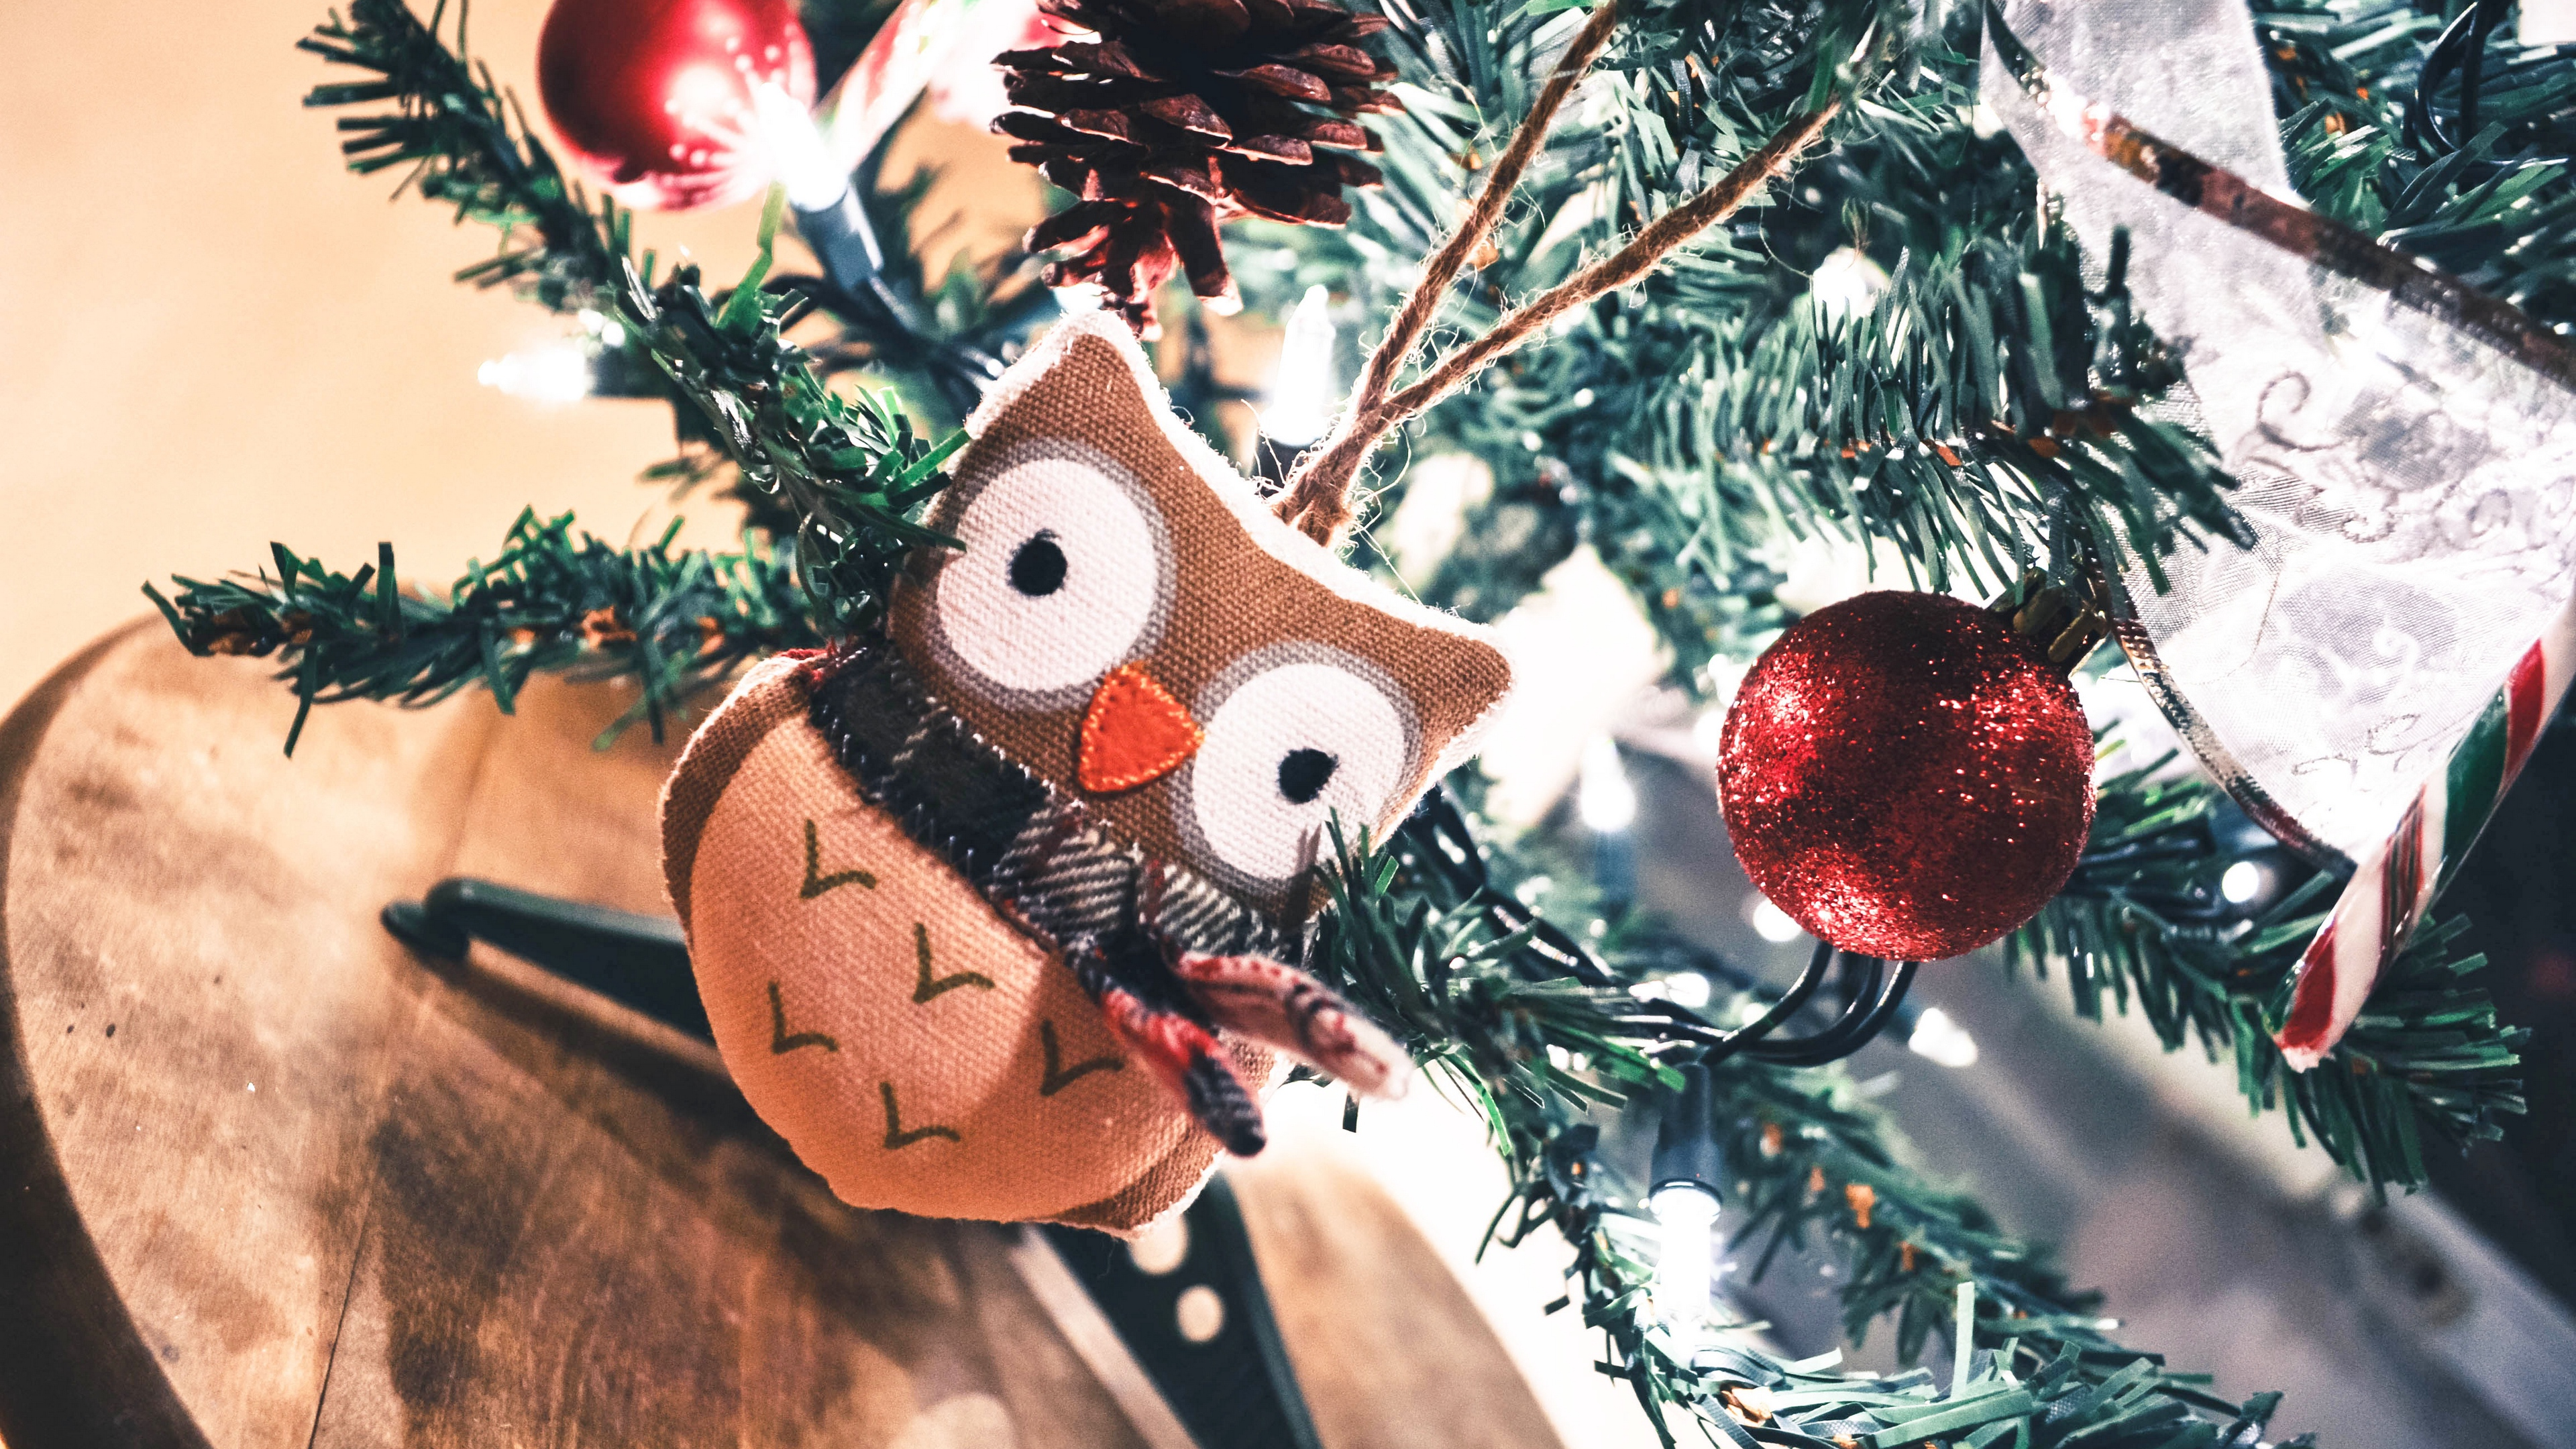 owl toy christmas new year 4k 1538344481 - owl, toy, christmas, new year 4k - toy, Owl, Christmas